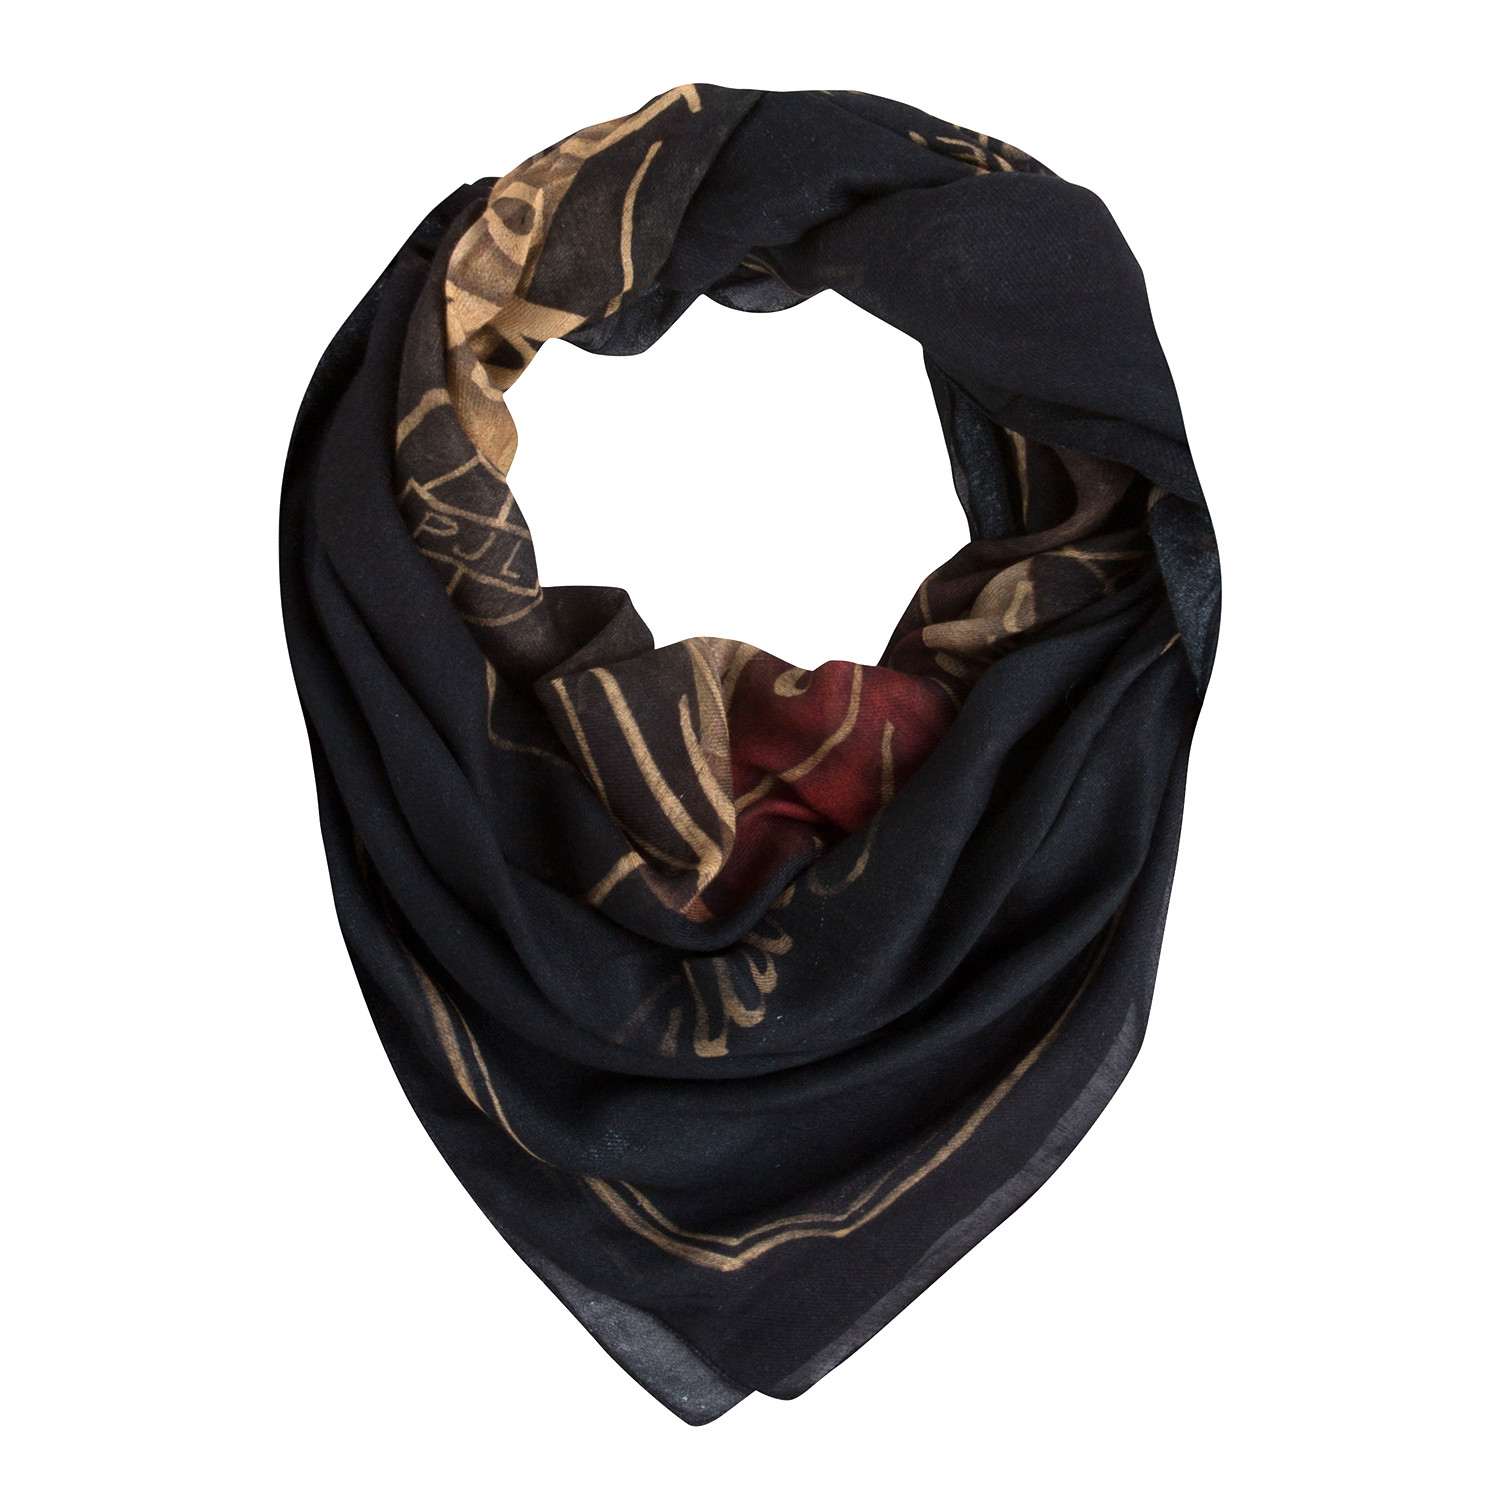 6ff4cfbe6f67 Luxor Foulard Homme PEPE JEANS BLEU pas cher - Foulards homme PEPE ...